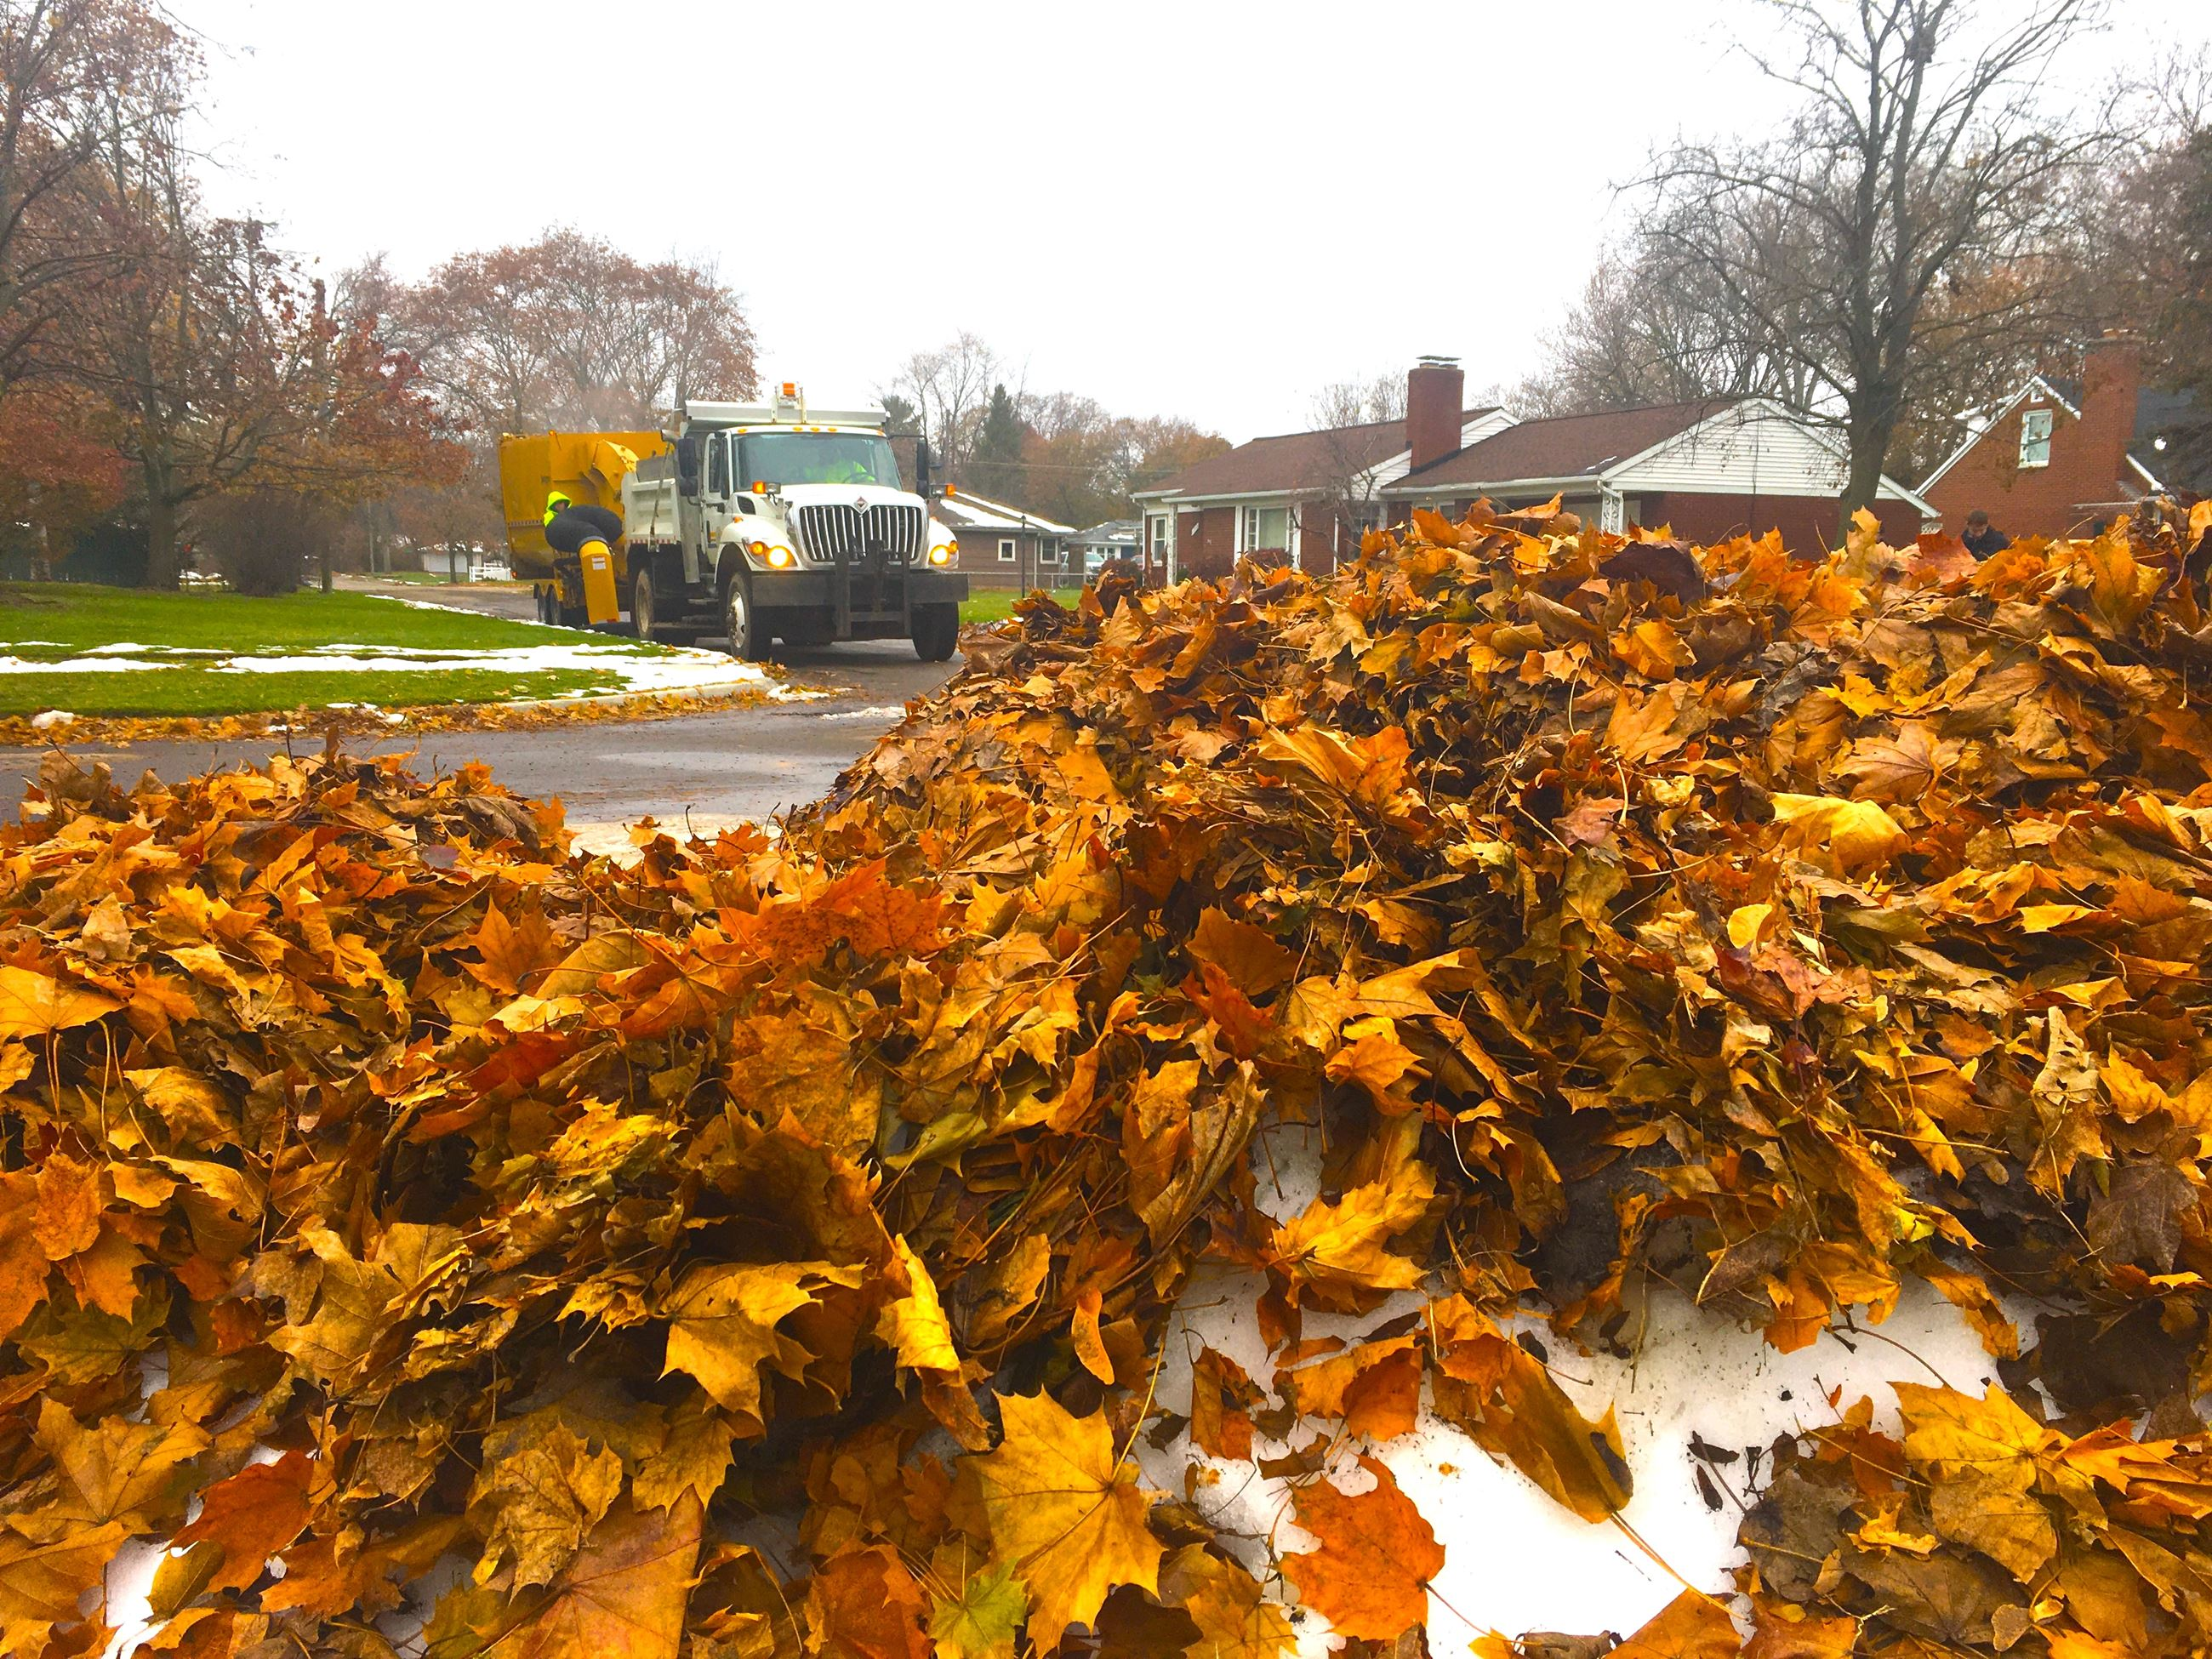 Leaf vacuum machine and leaf pile